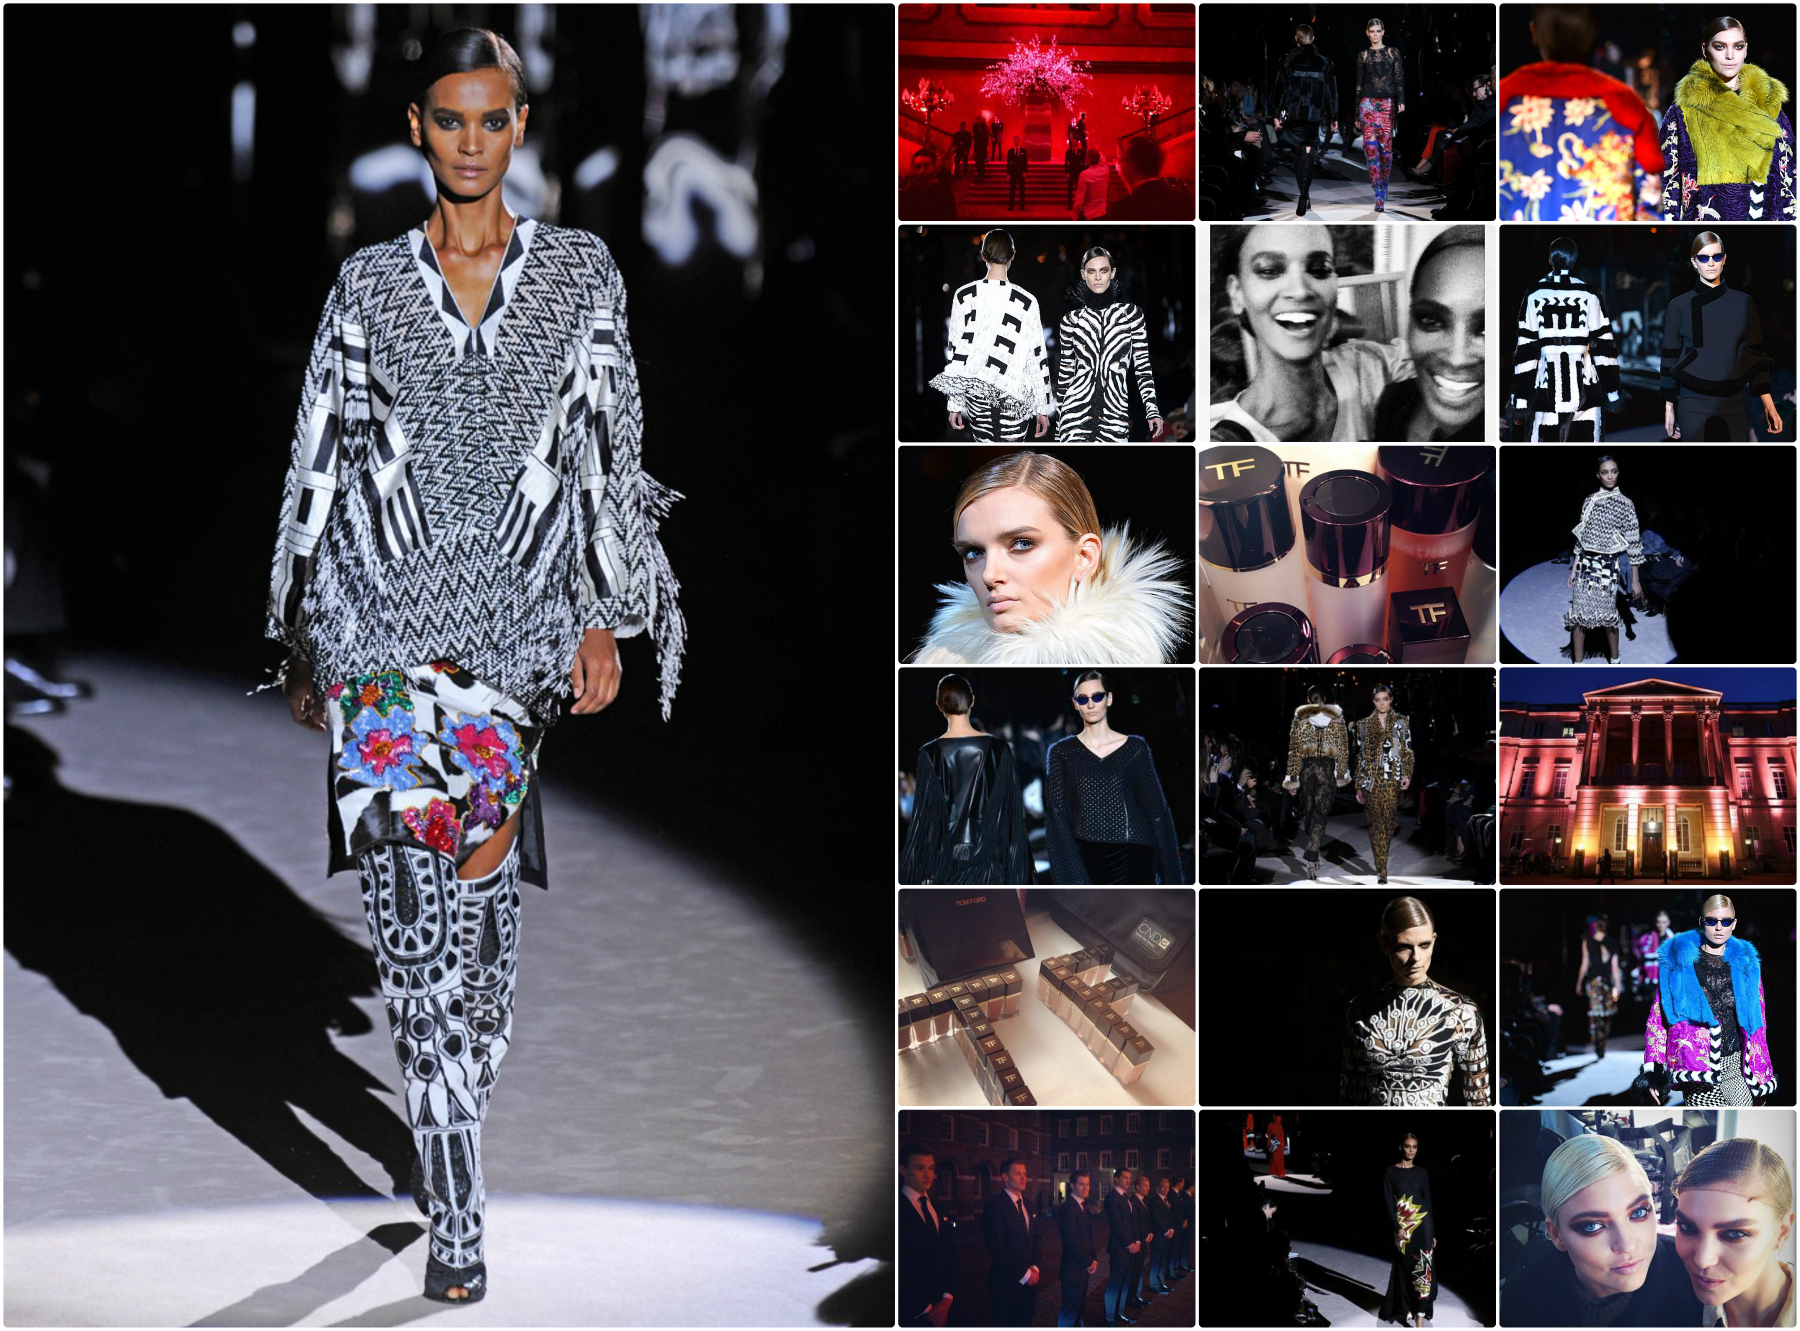 TOM FORD Fall/Winter 2013 2014 Womenswear Runway Show/London Fashion Week TF LFW